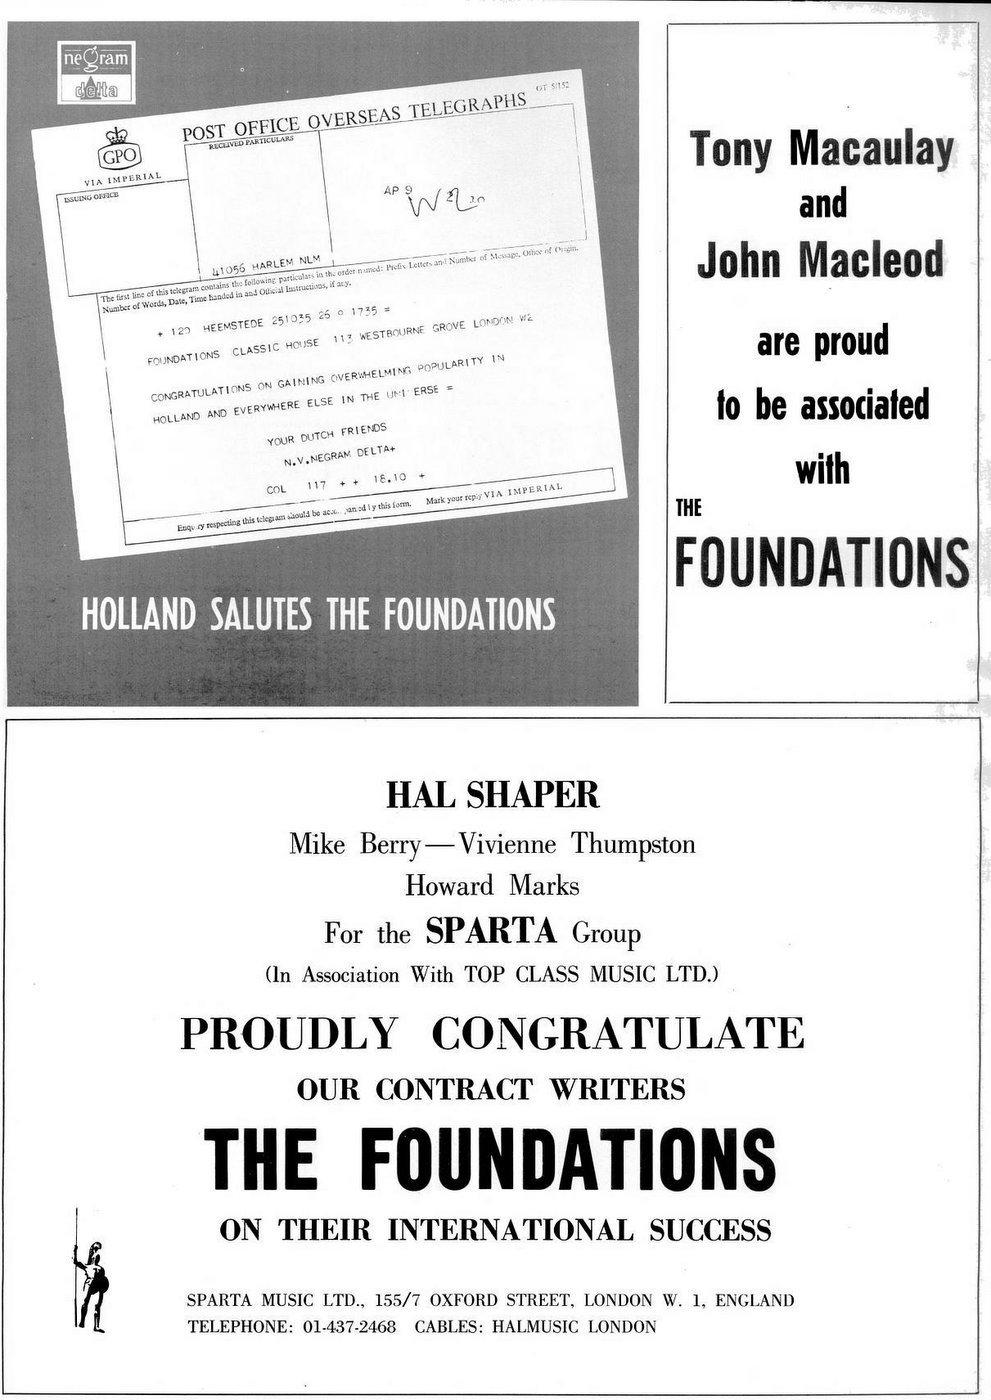 Congrats to the Foundations 1969